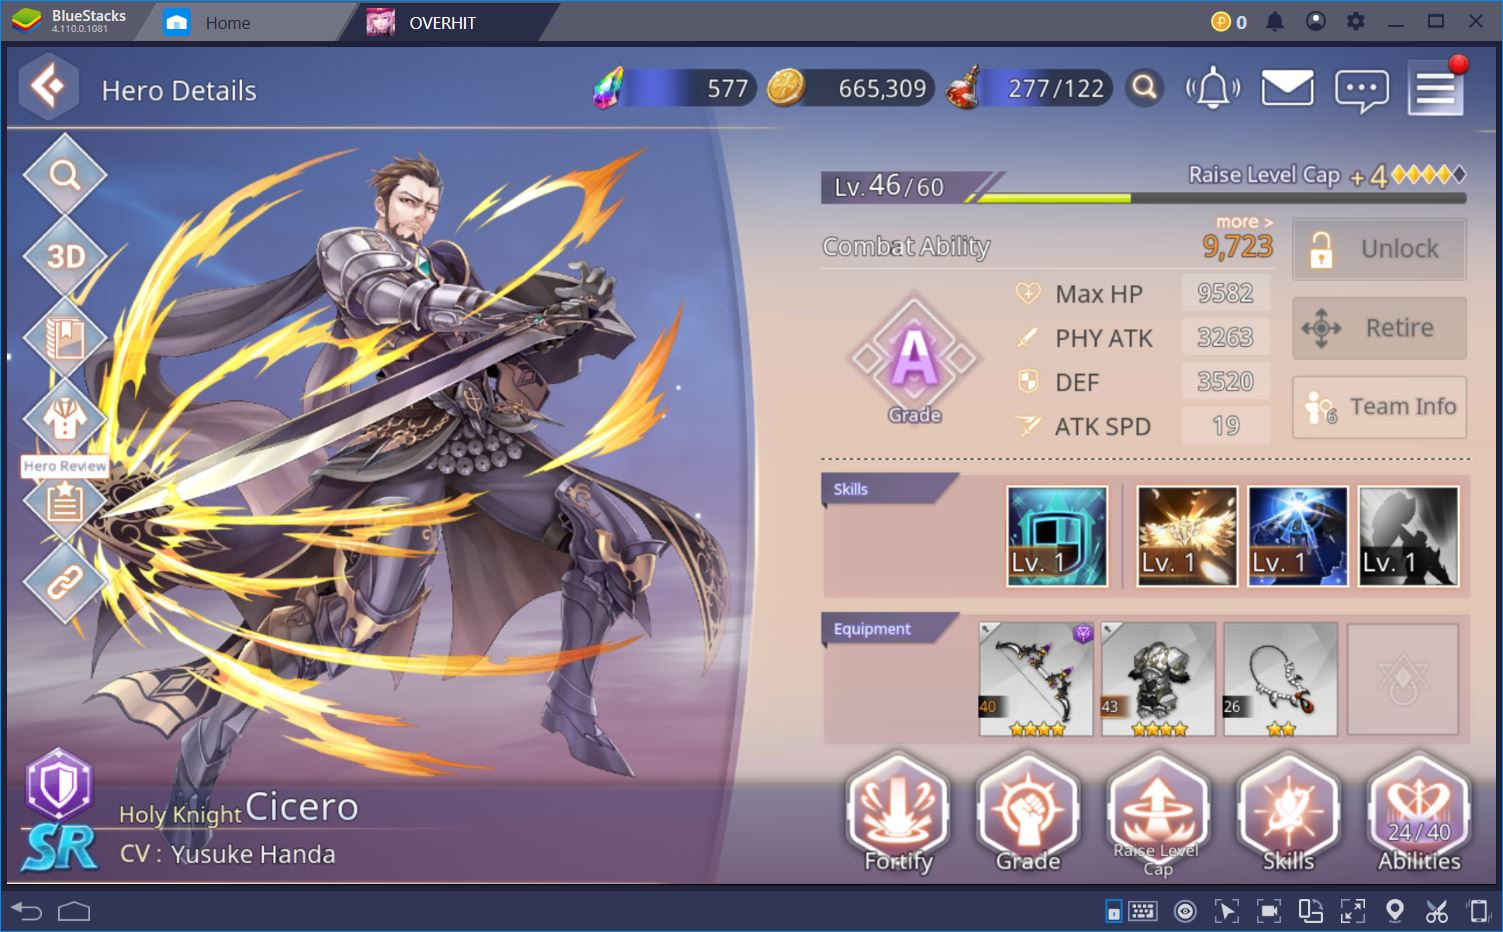 OVERHIT : How to Get the Best Gear for Your Heroes